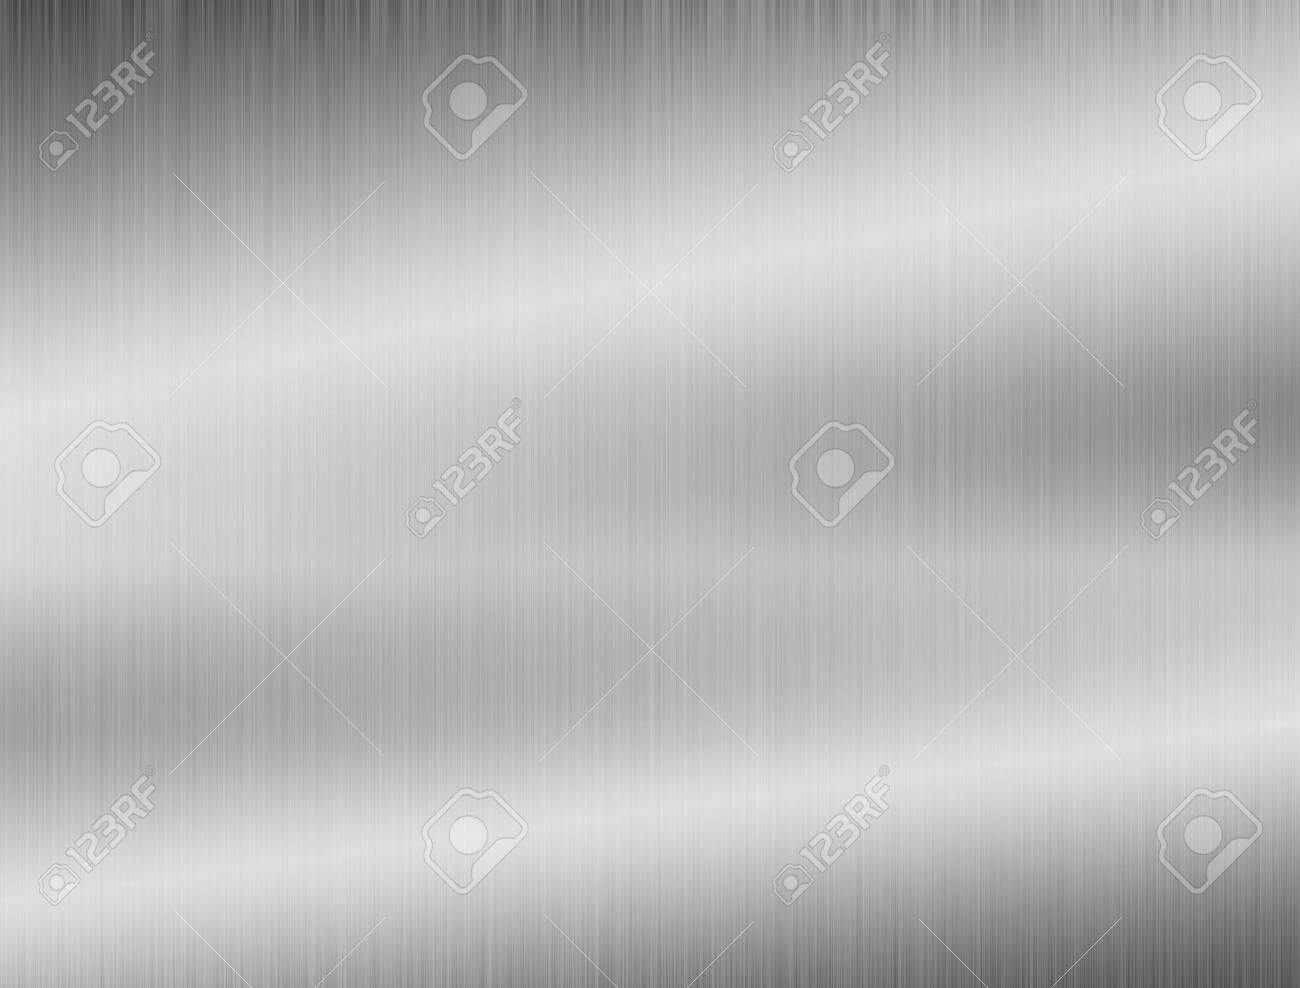 Bright gray background abstract with reflection - 140834886